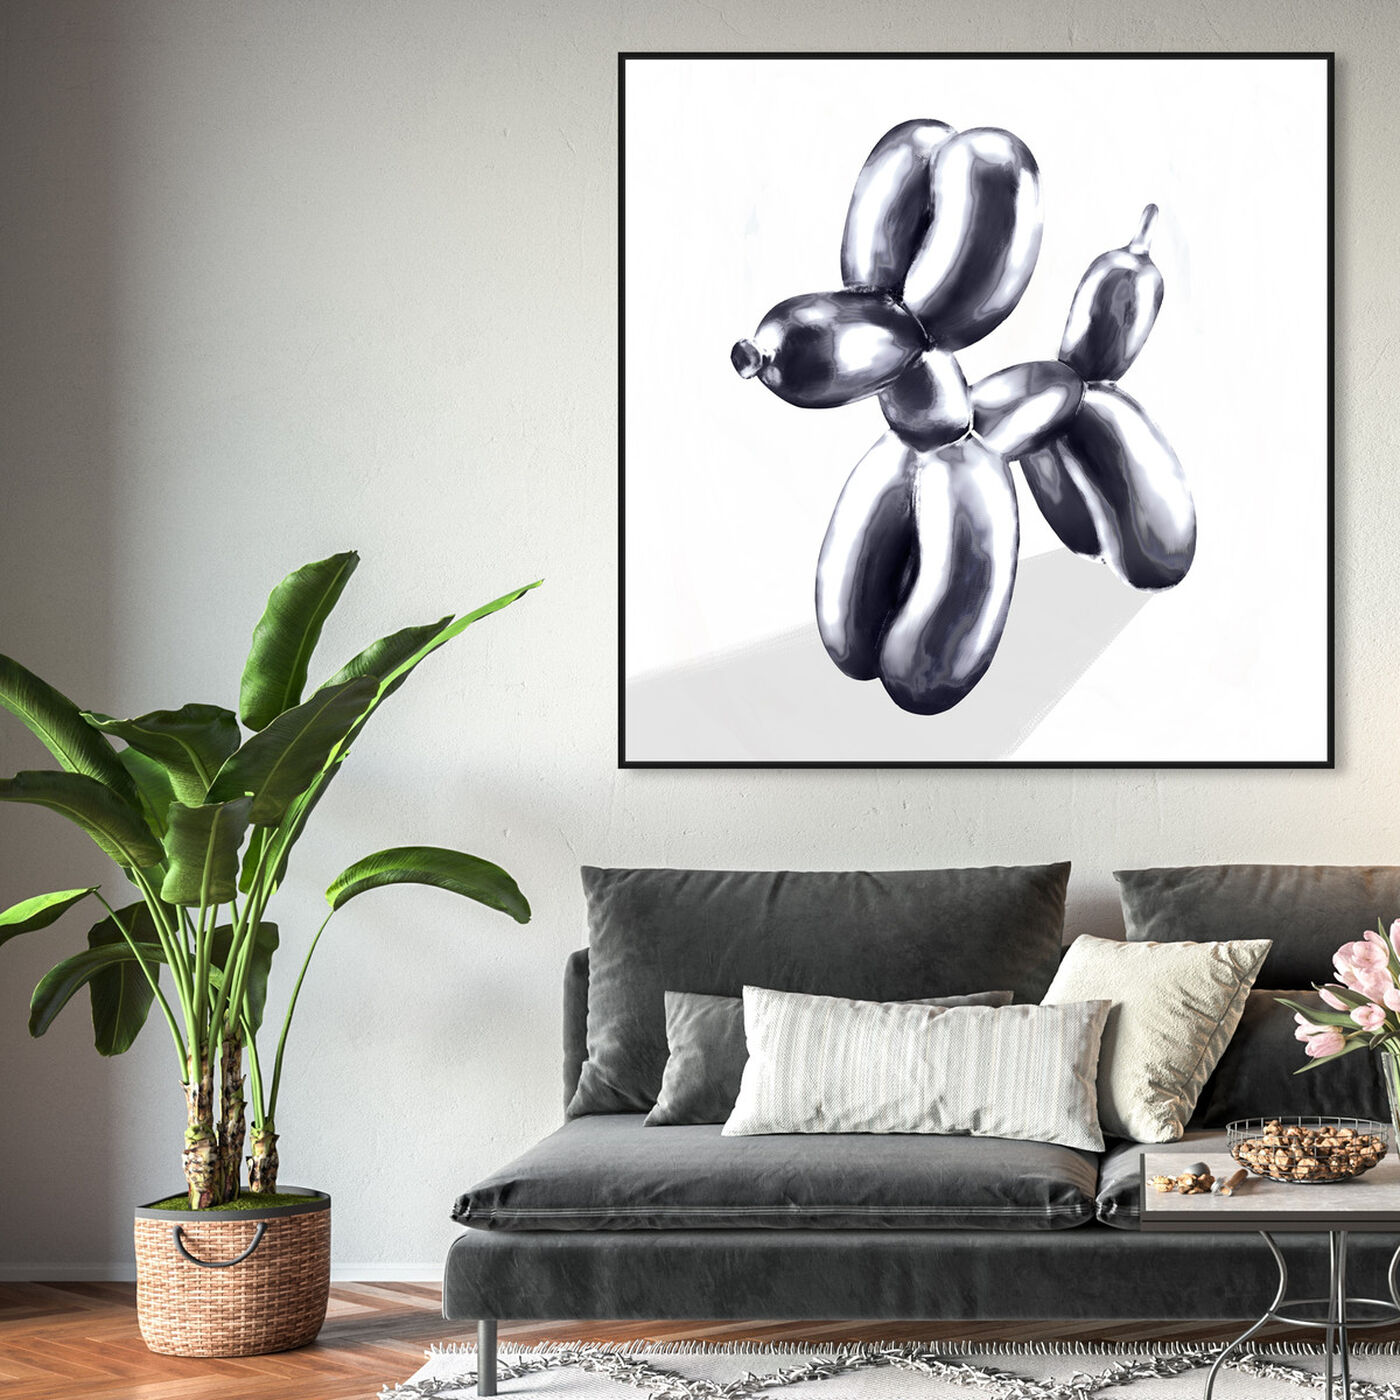 Hanging view of balloon dog featuring animals and dogs and puppies art.